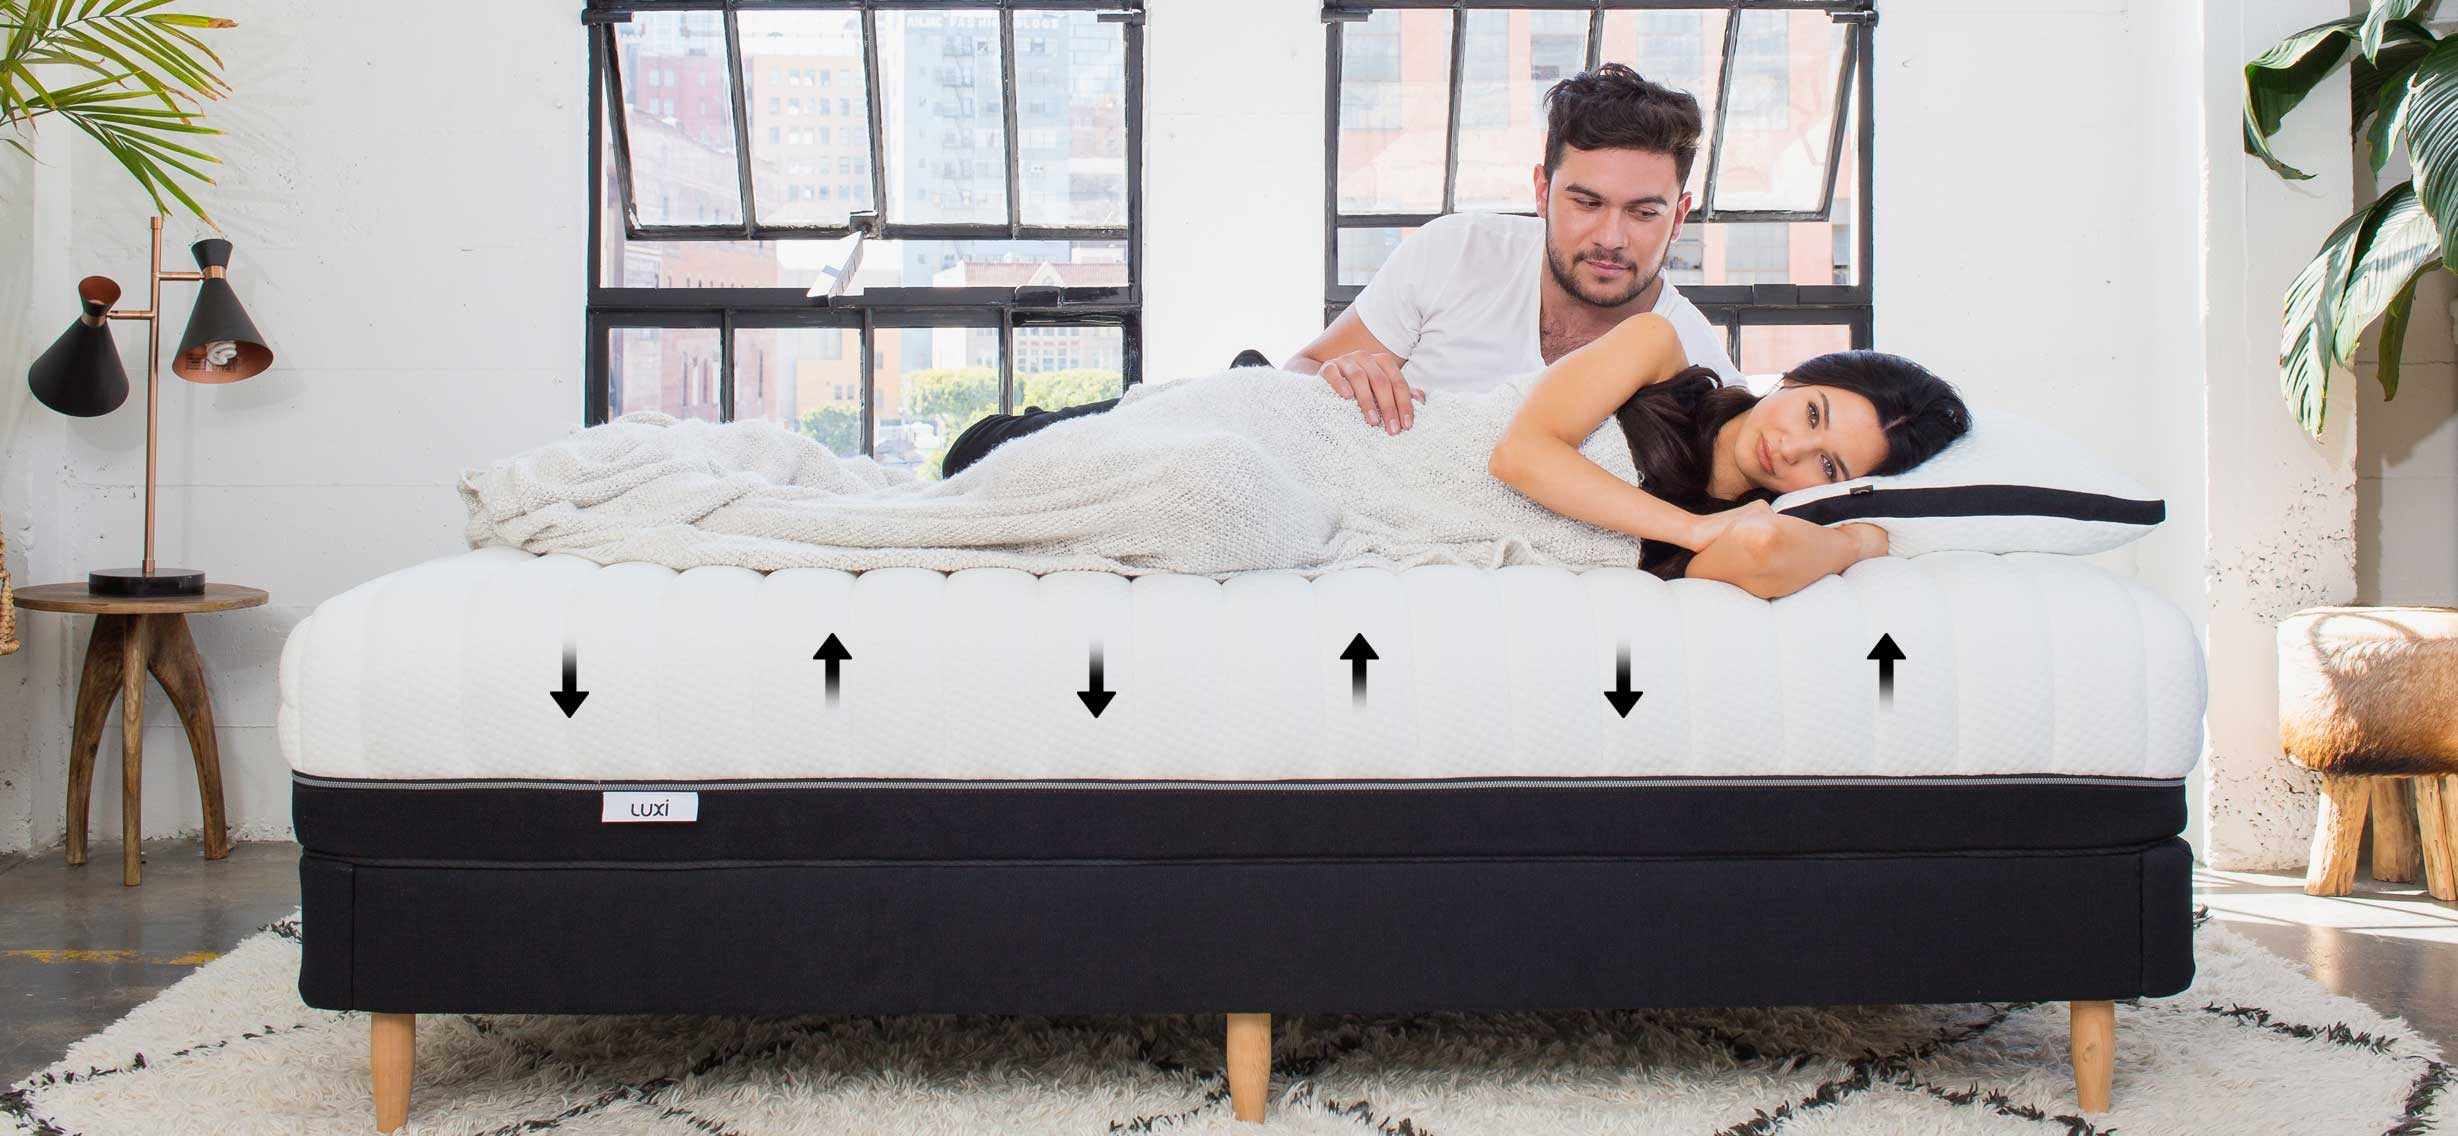 the luxi is a highend multifoam mattress which you can buy at an affordable range whatu0027s even better about it is the much longer lifespan compared to